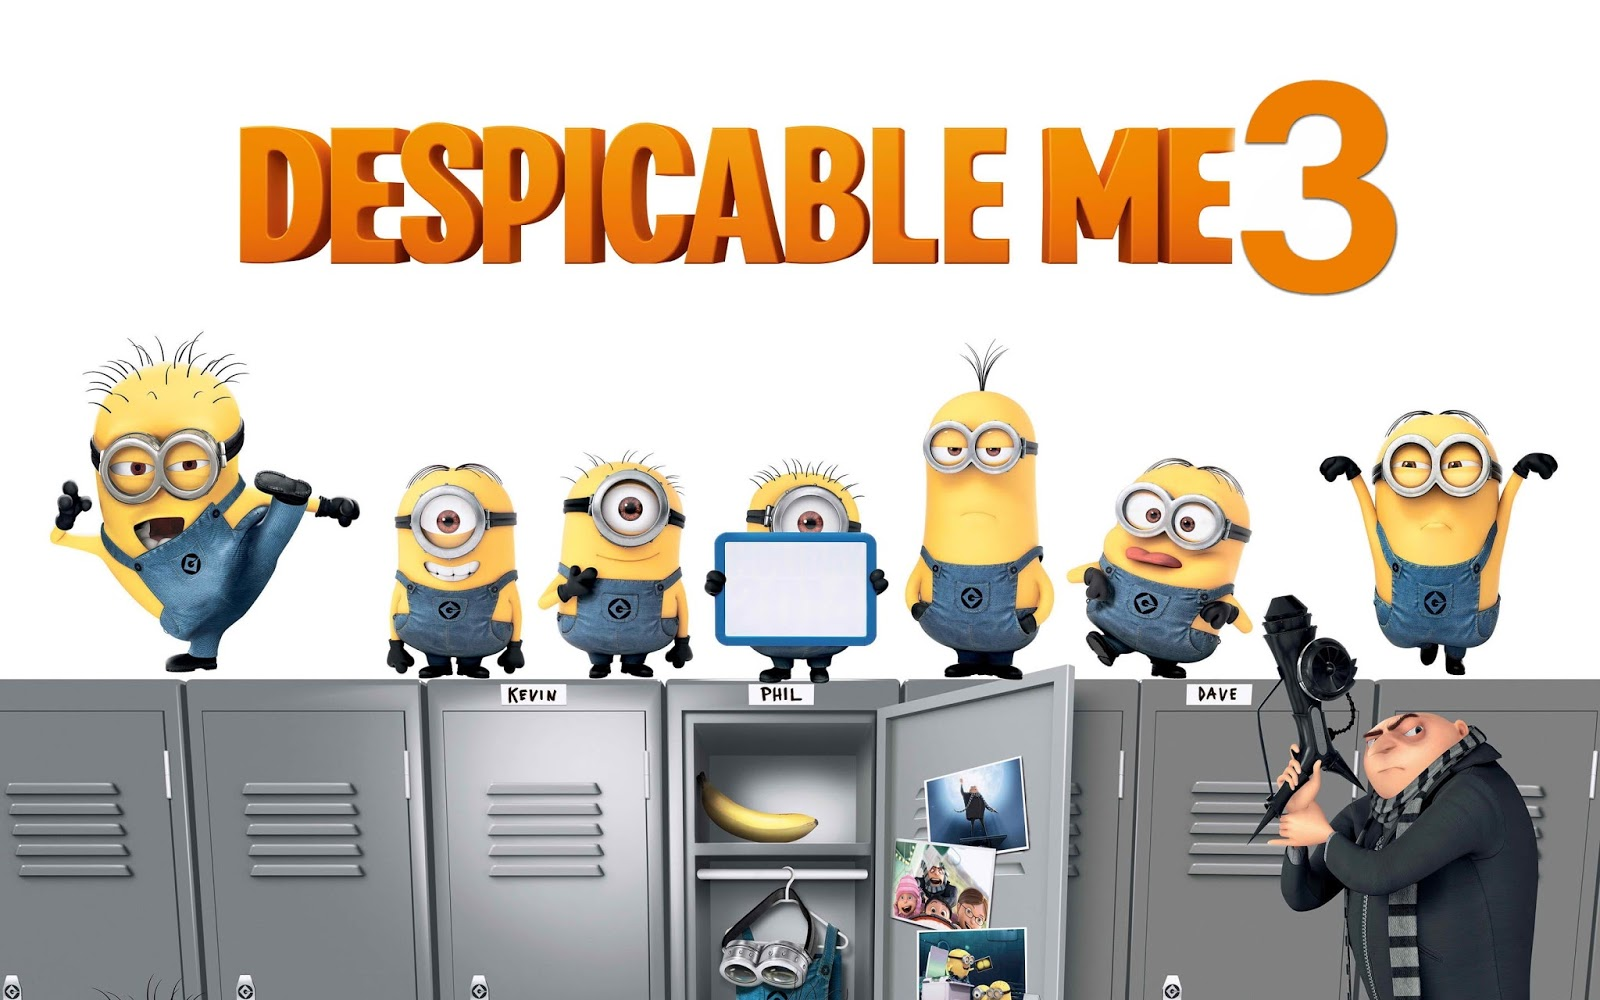 Despicable Me 3 has becoming the best opening for an animated movie